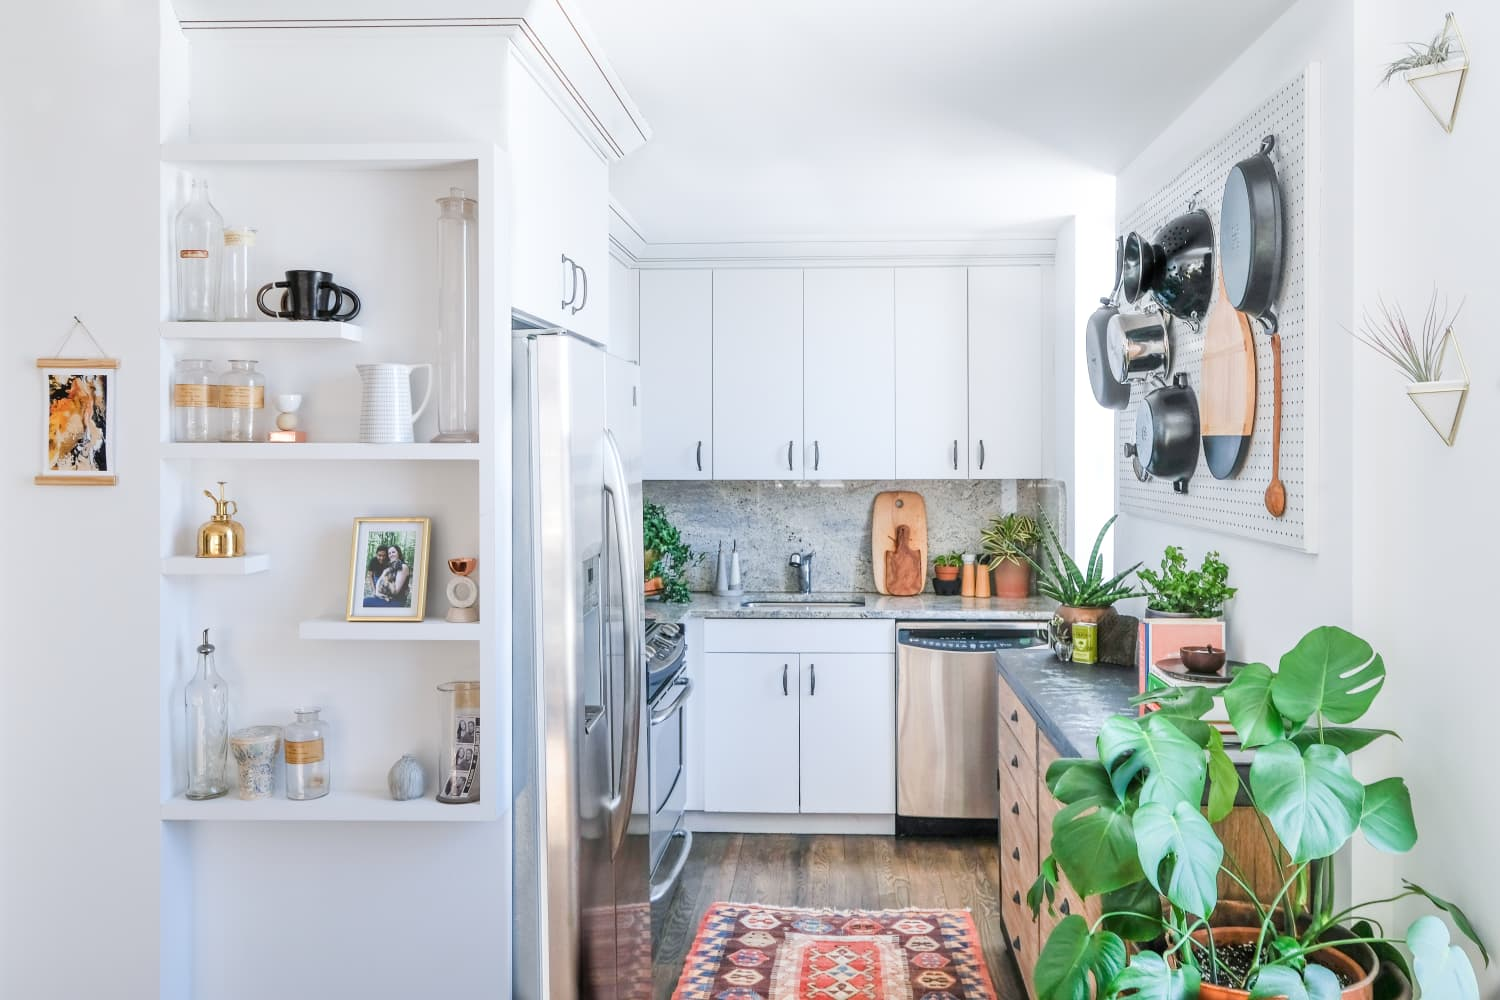 7 Small Kitchen Items that Make a Big Difference, According to Interior Designers